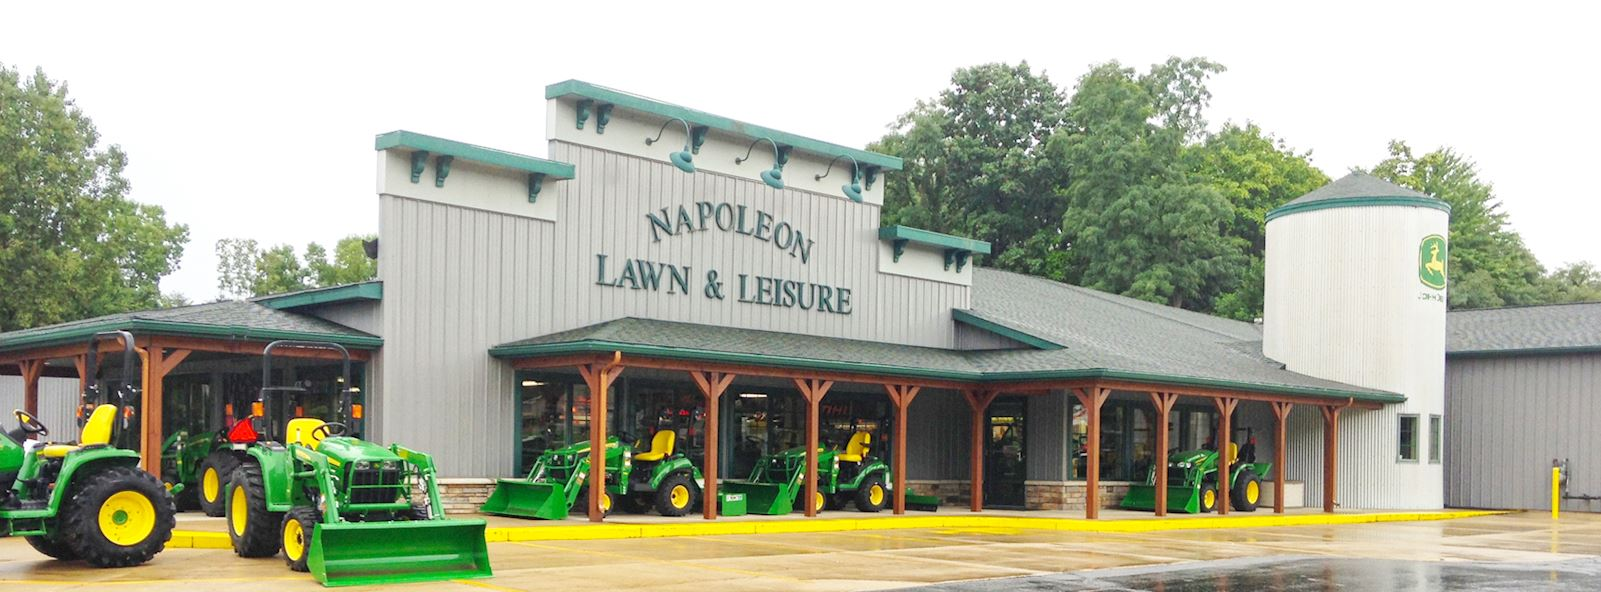 napoleon_lawn_and_leisure